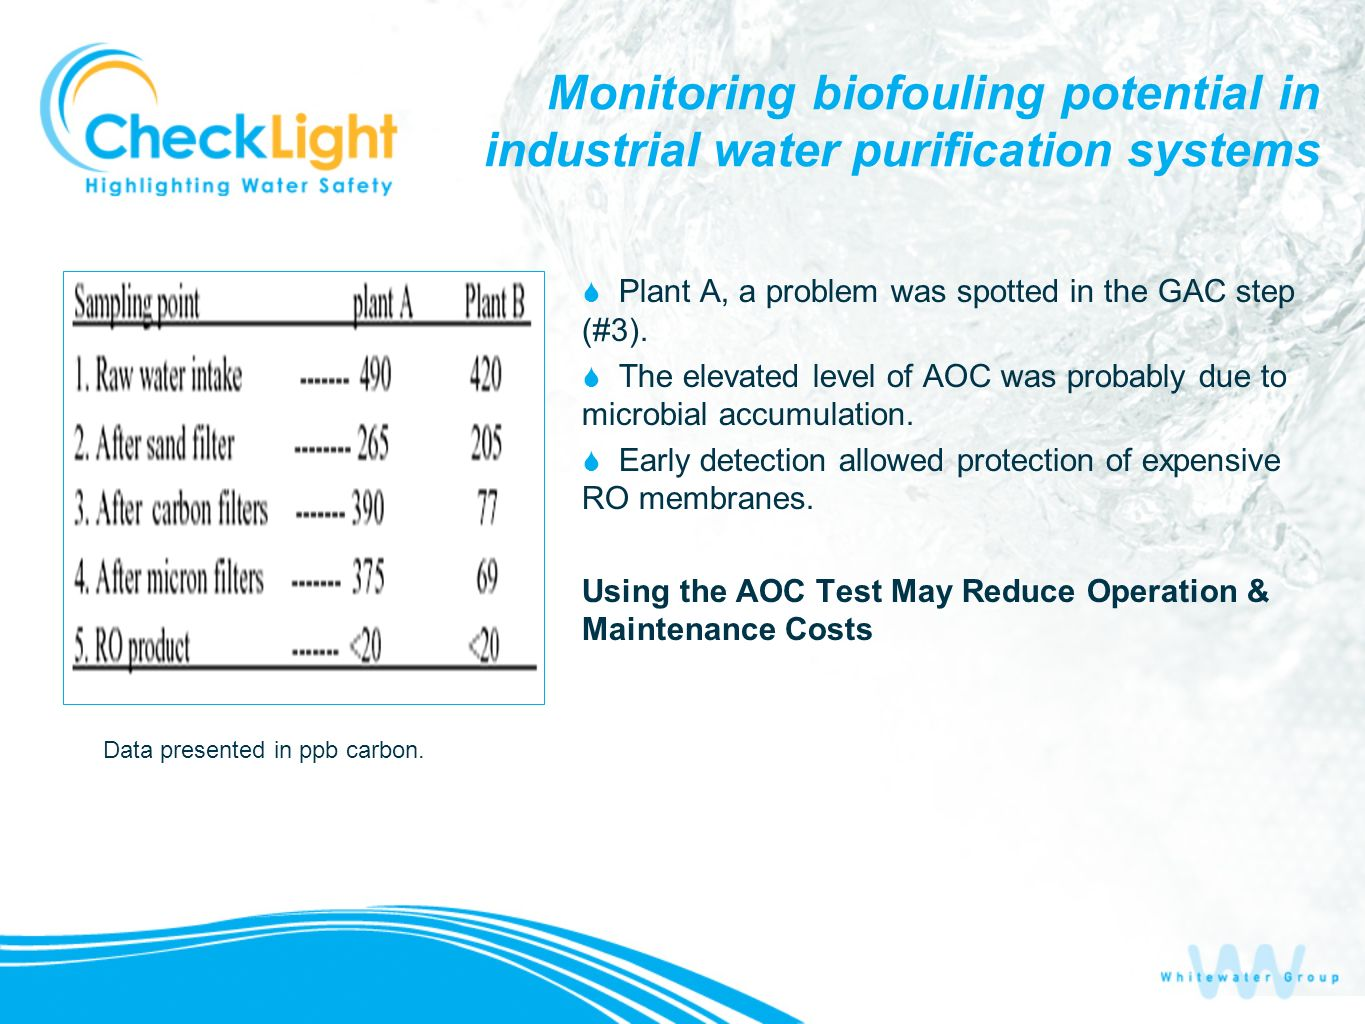 Monitoring biofouling potential in industrial water purification systems